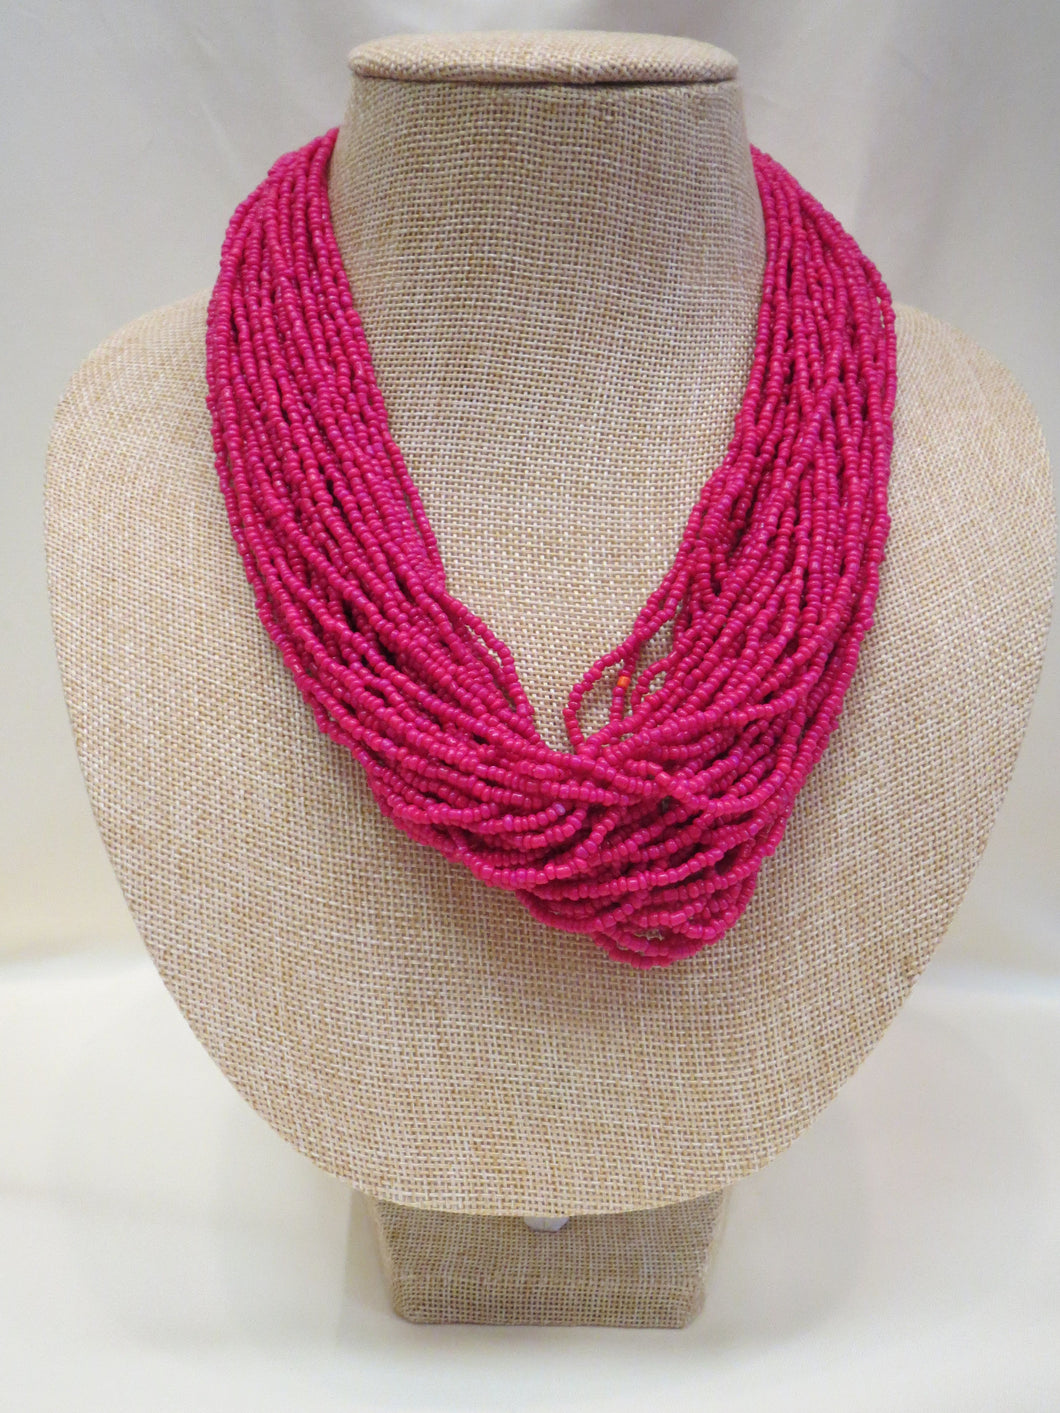 ADO | Hot Pink Multi Strand Mini Bead Necklace - All Decd Out